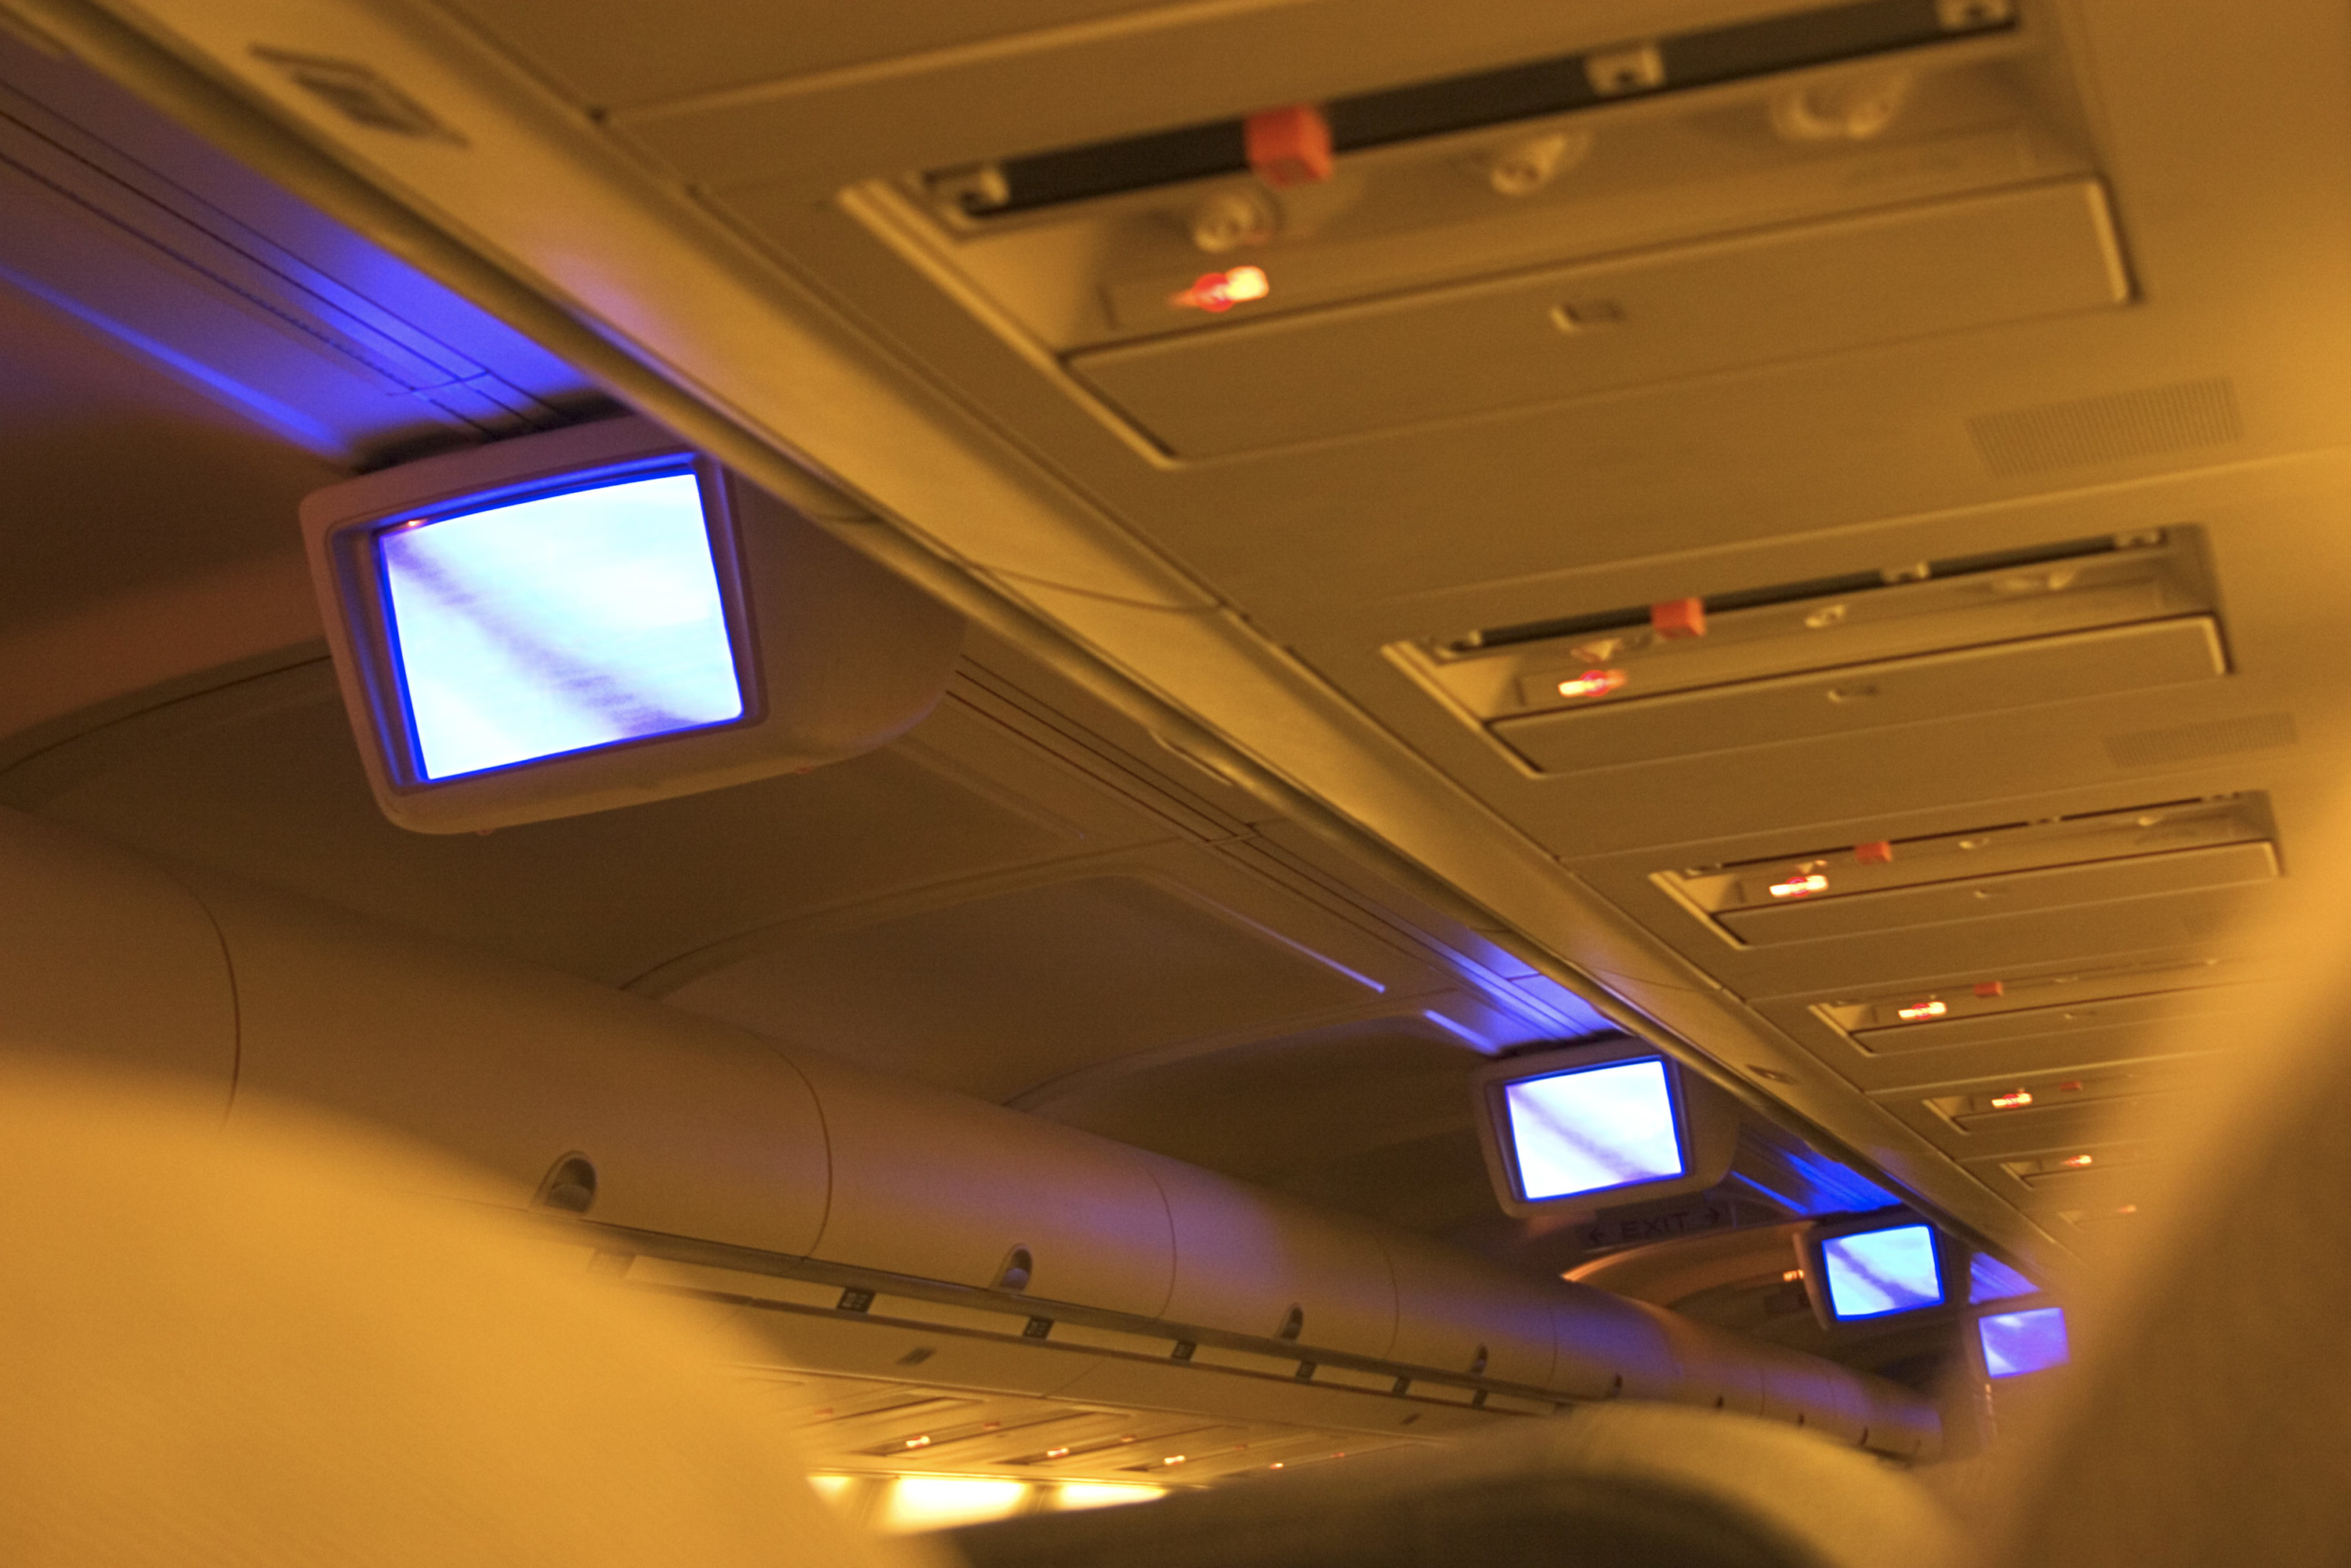 A '90s plane with TV monitors hanging from the aisle